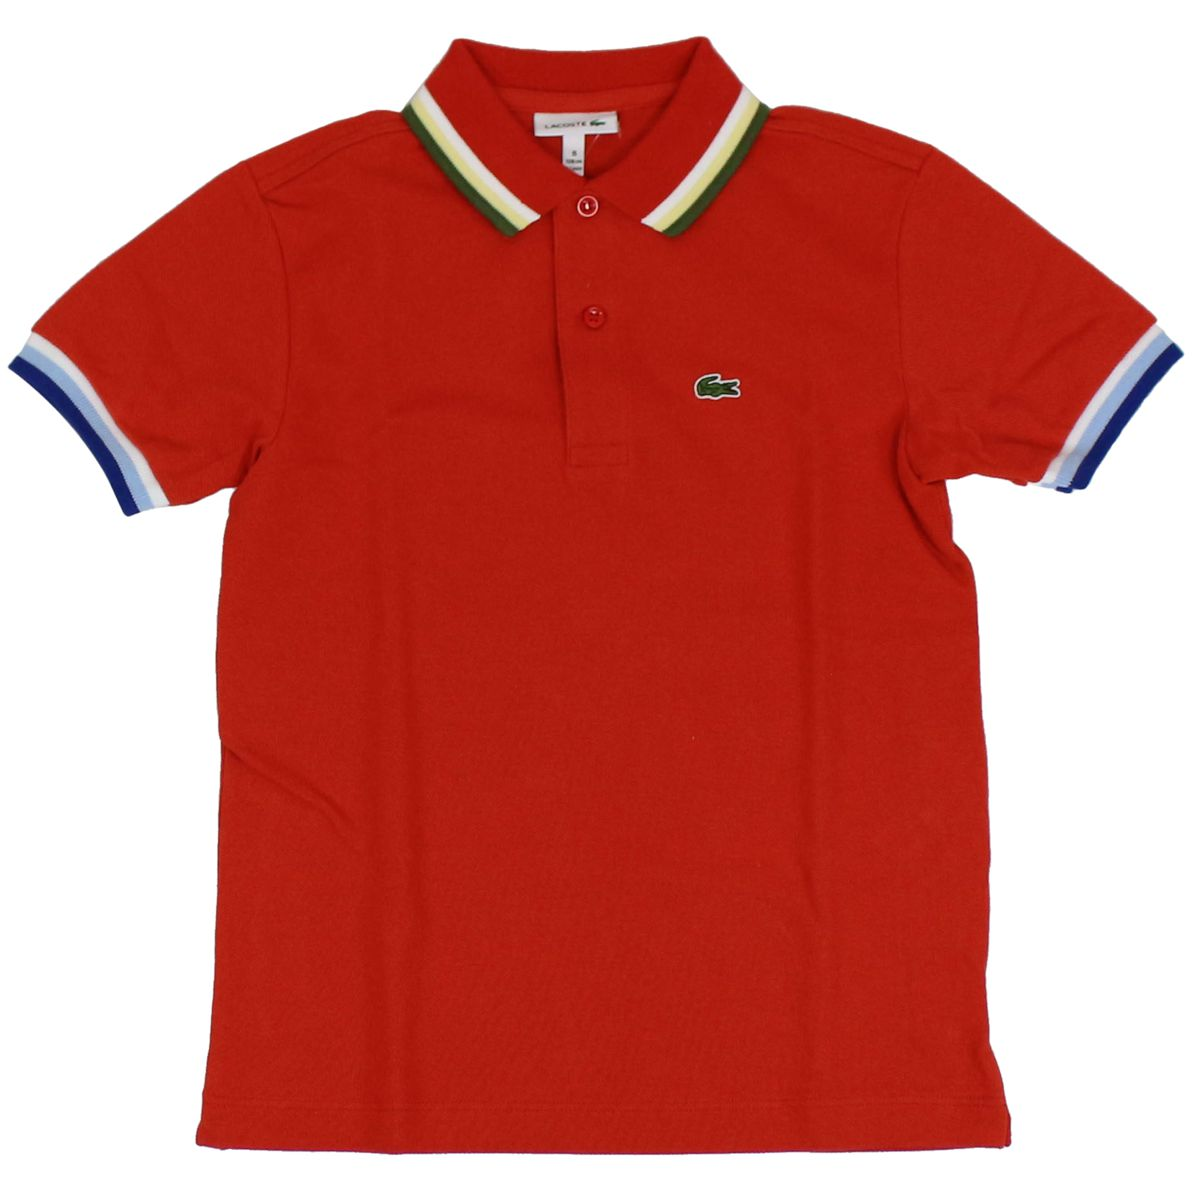 Cotton polo shirt with contrasting collar Coral Lacoste